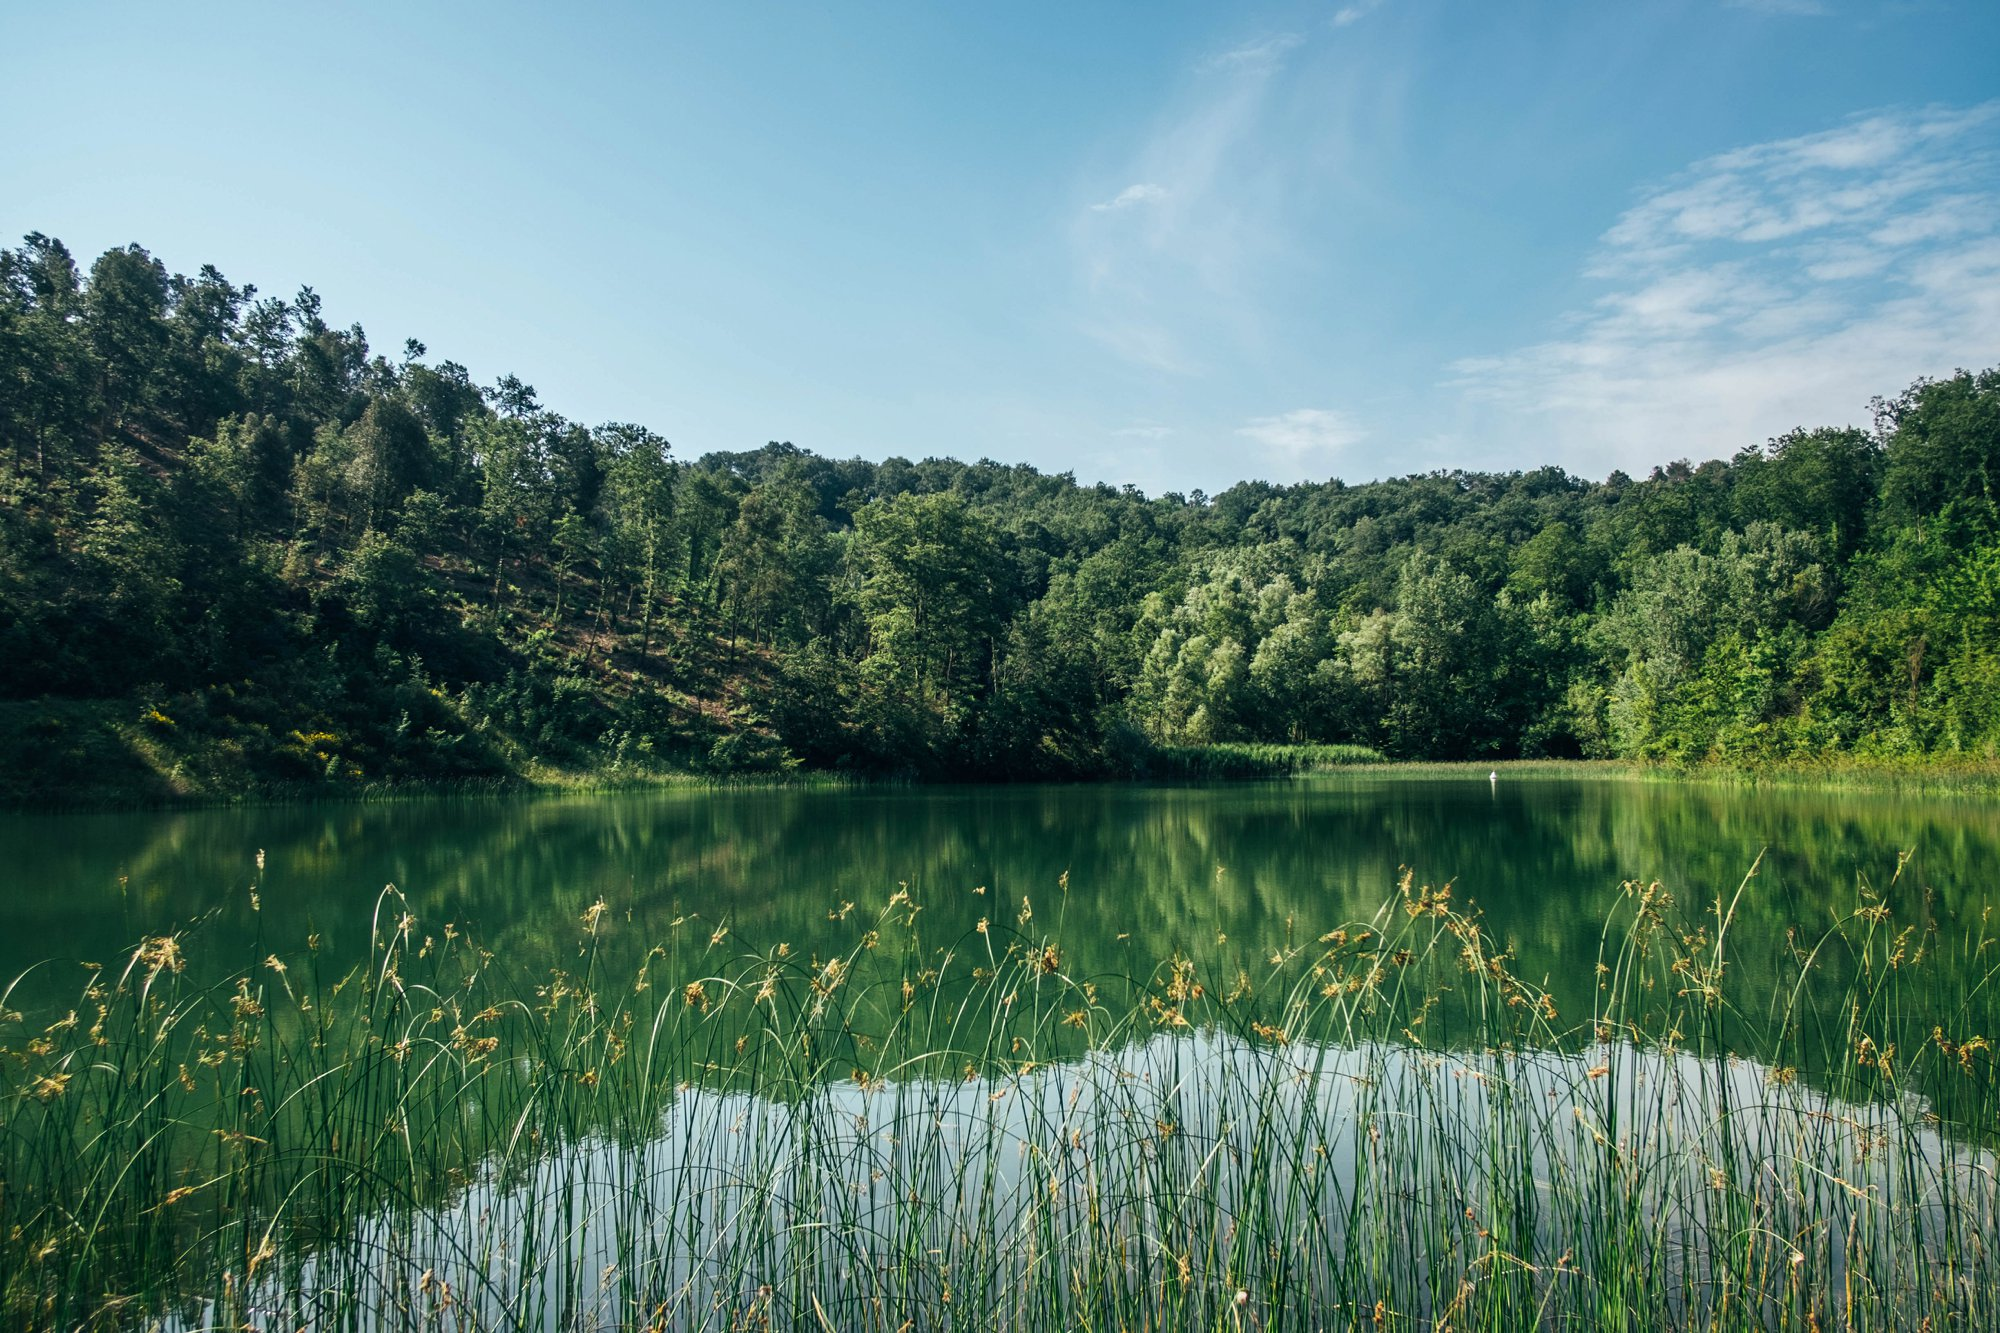 Lake in Ghizzano Tuscany Essex documentary travel photographer